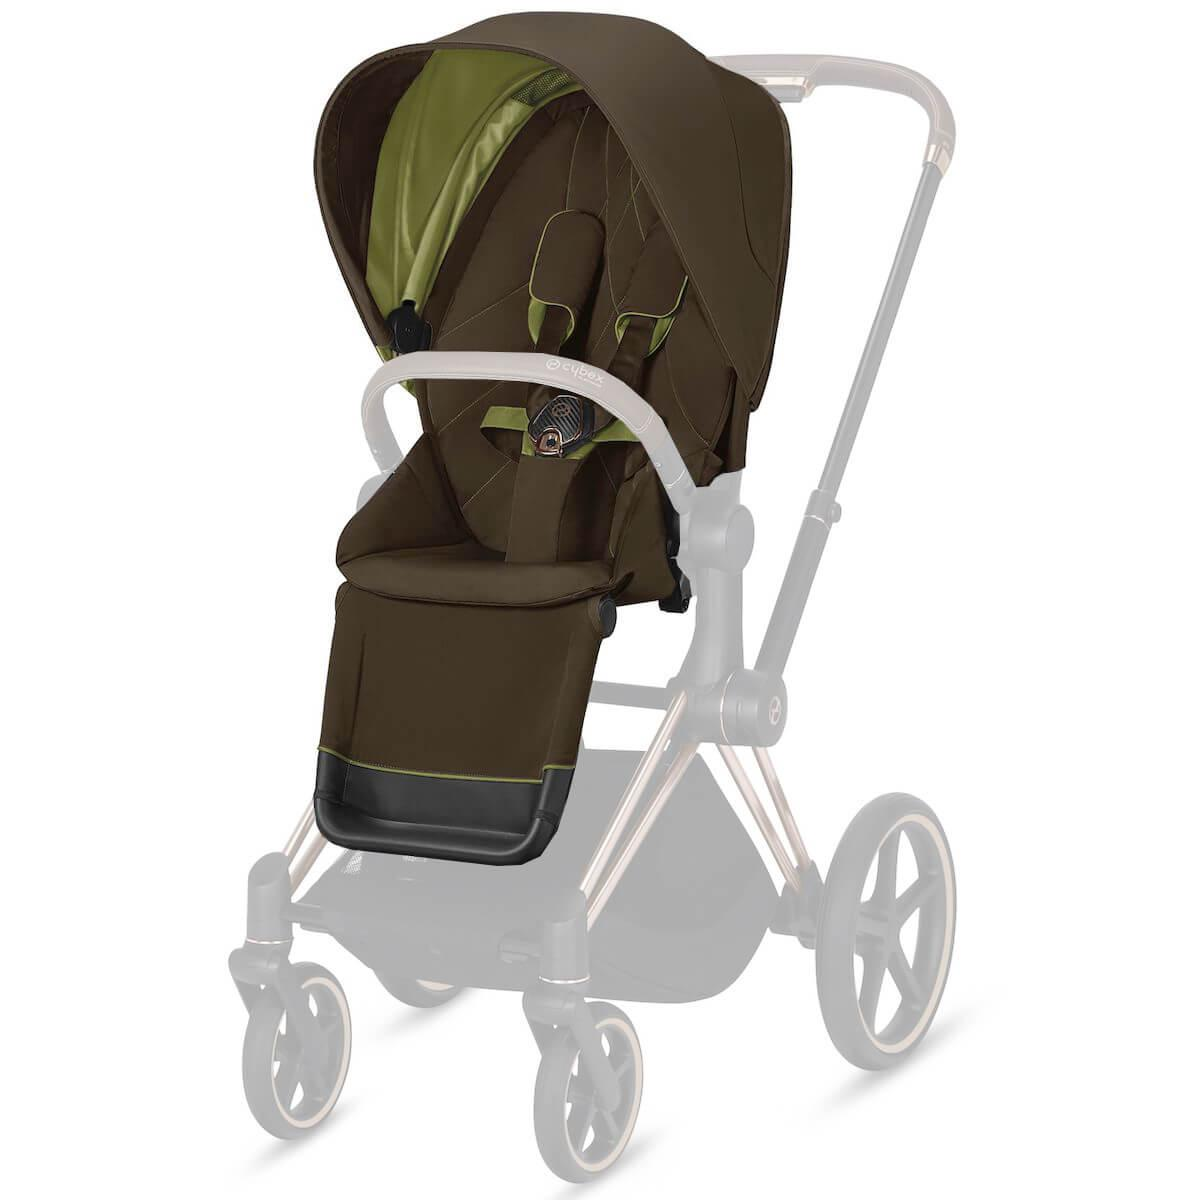 Assise-habillage poussette PRIAM Cybex Khaki green-khaki brown